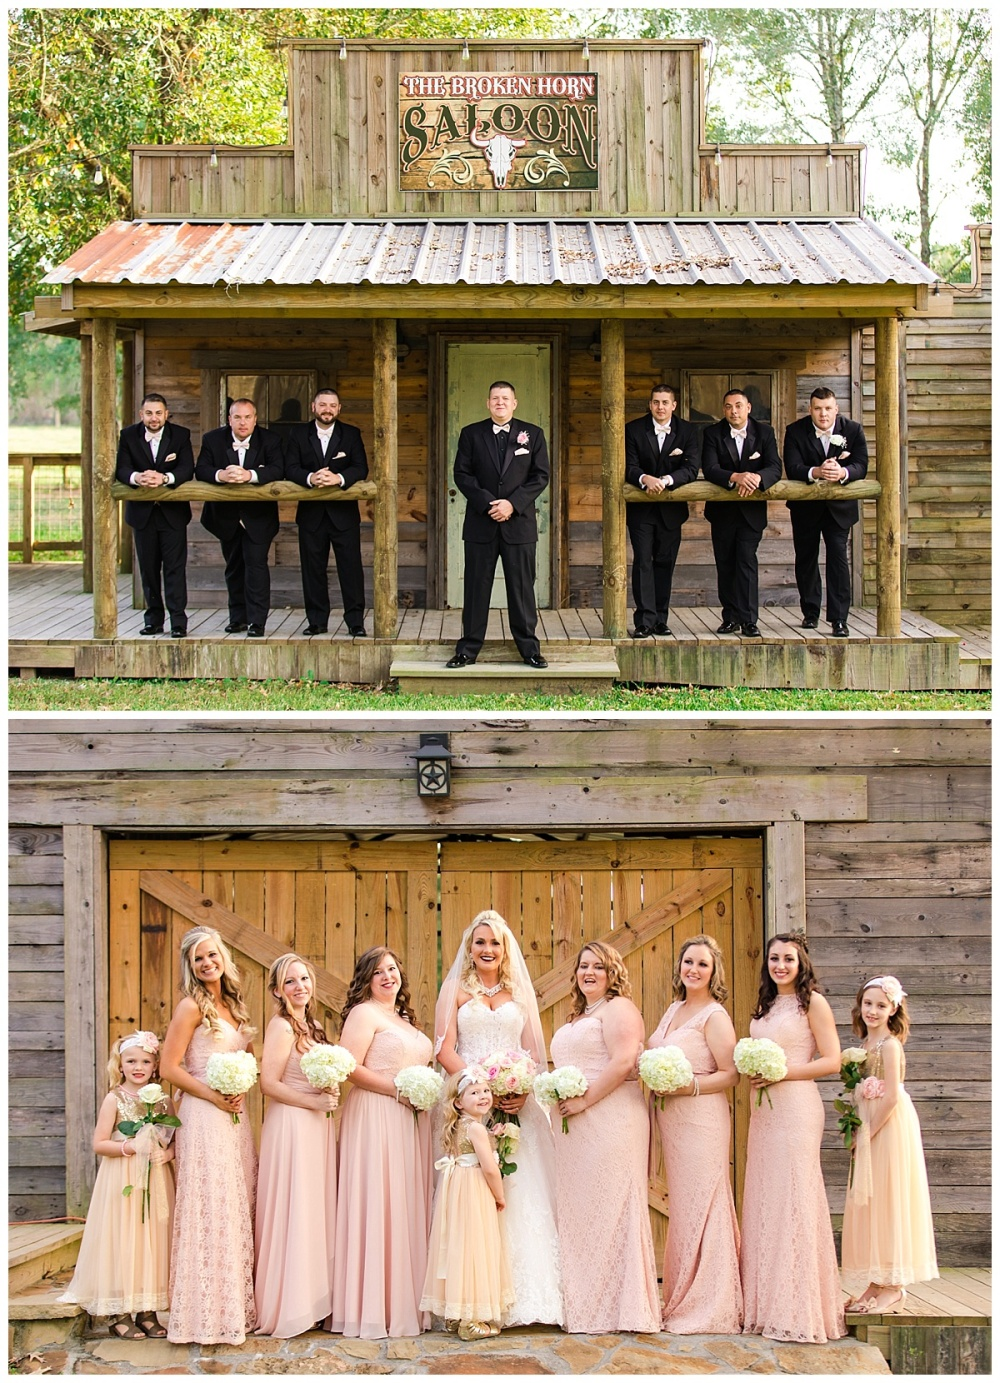 Carly-Barton-Photography-South-Texas-Wedding-Photographer-SJP-Ranch-Hardin_0069